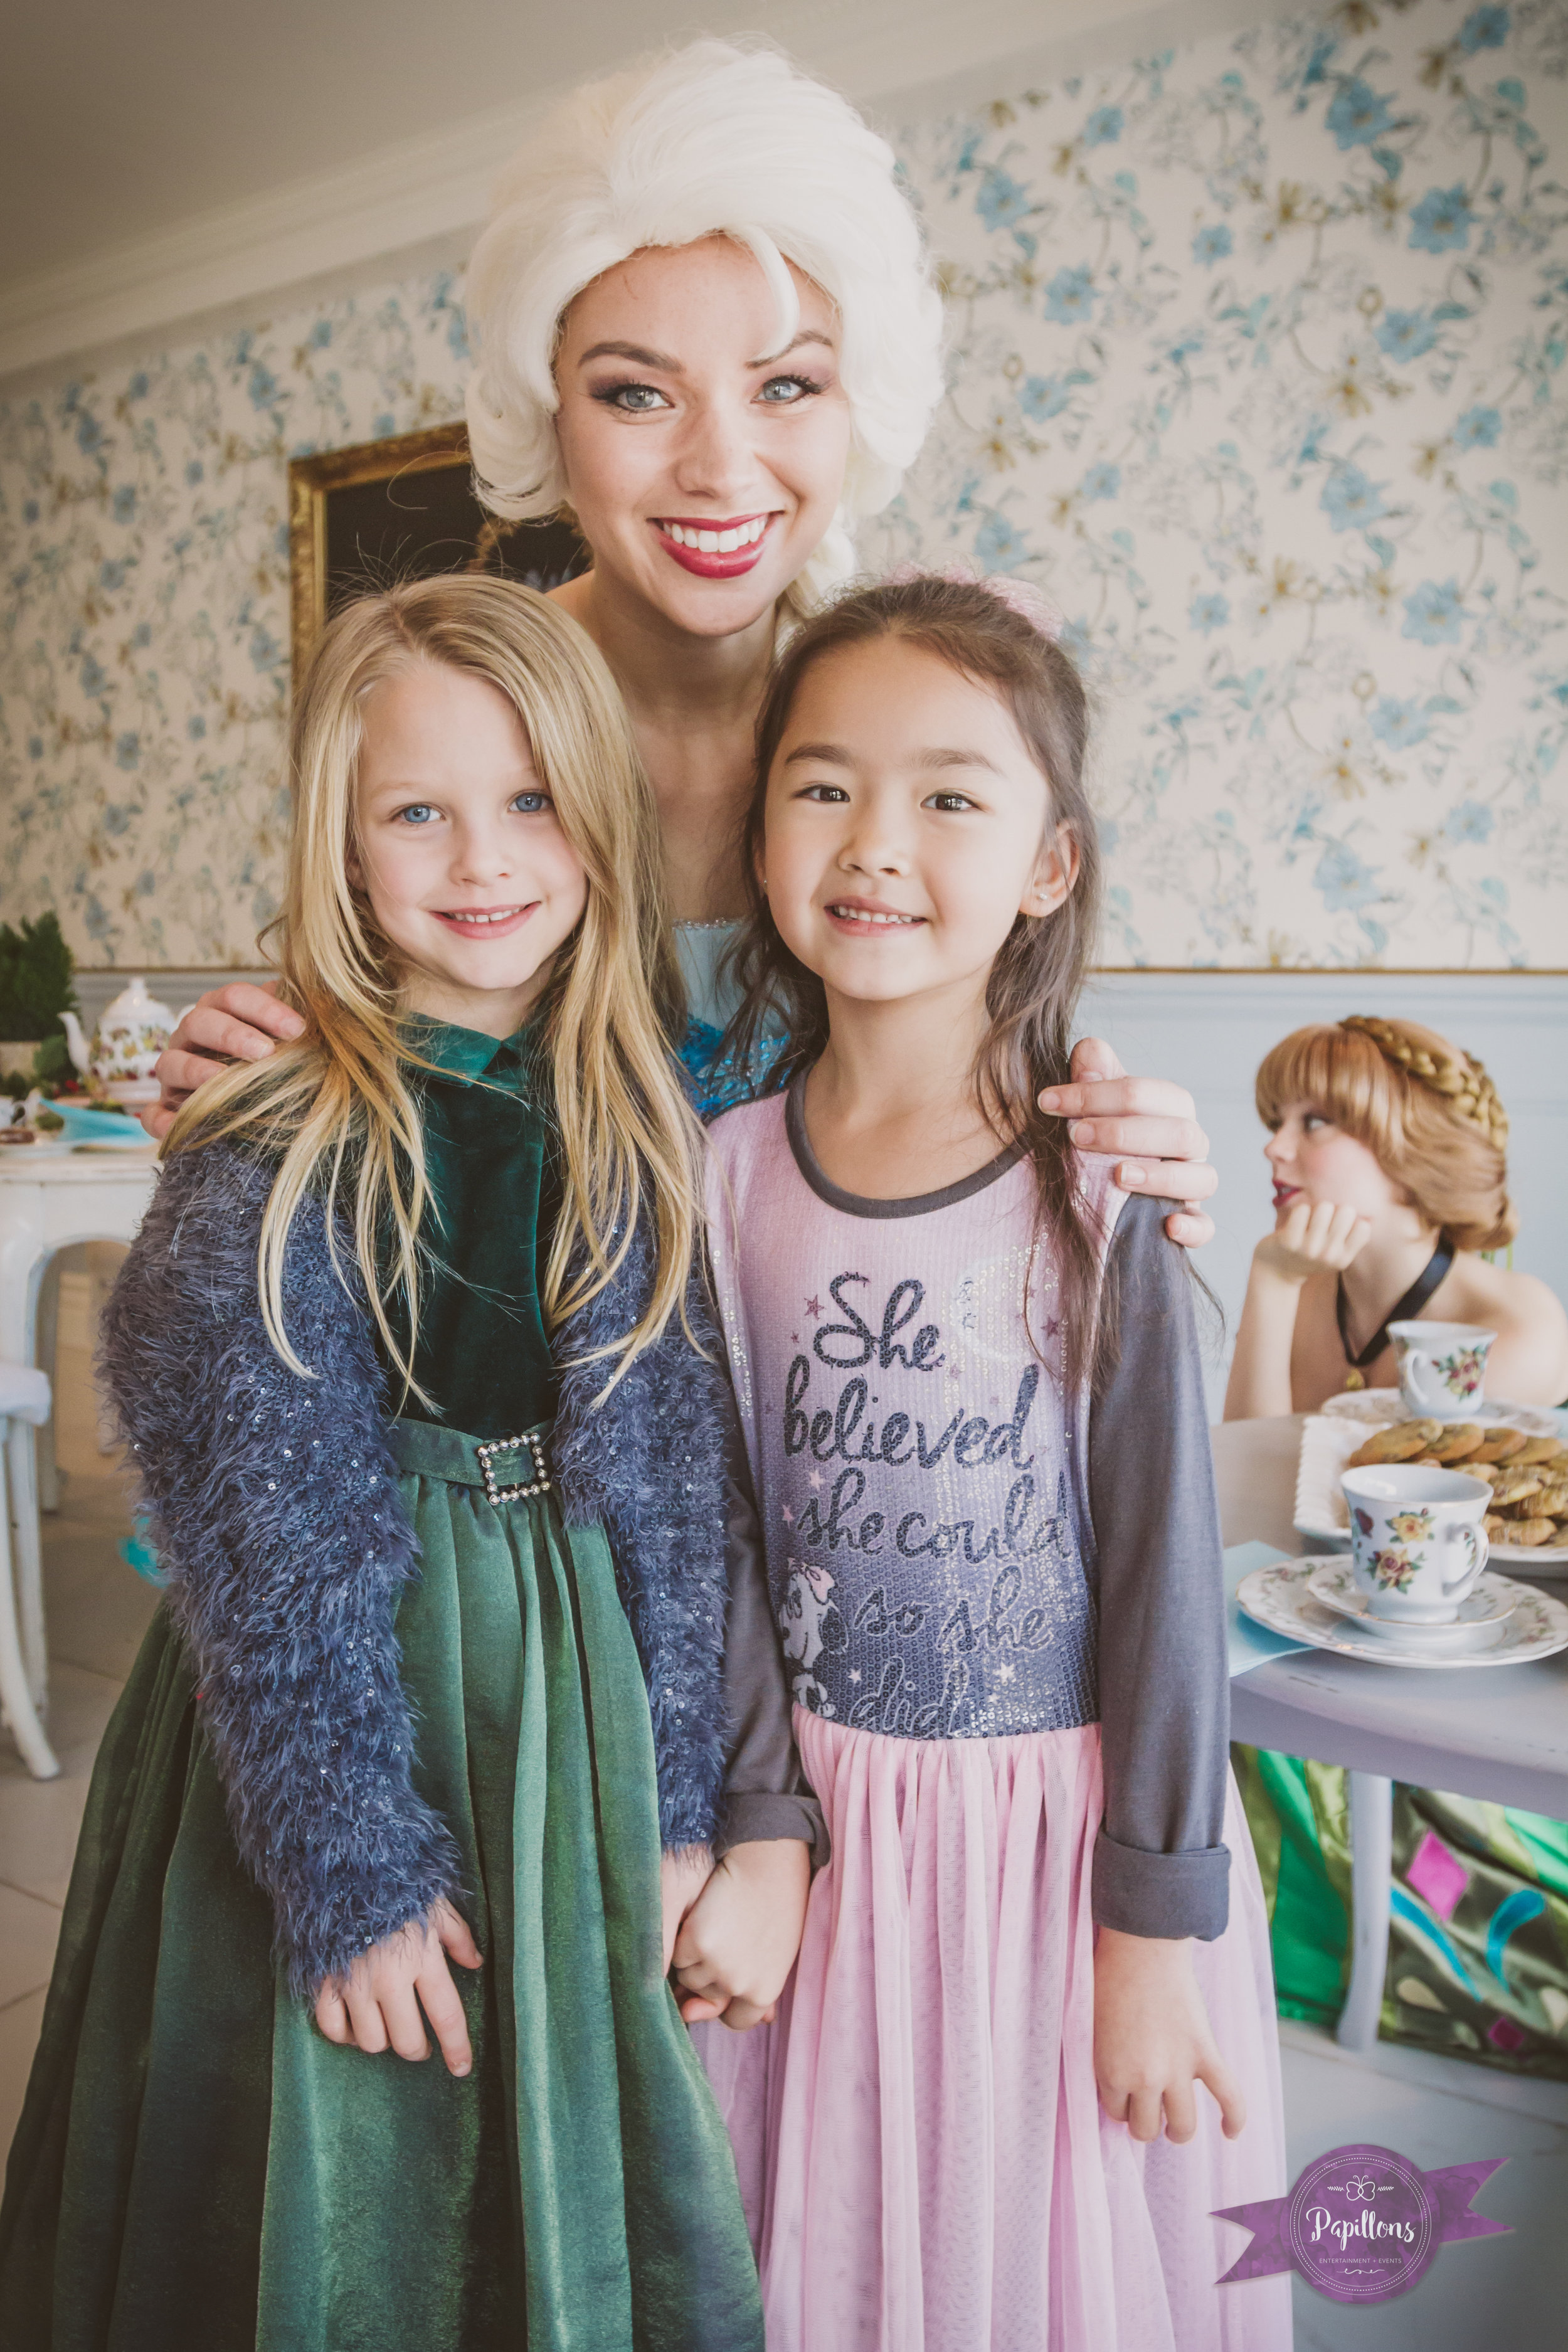 french confection co best friends queen elsa tea party burbank los angeles (1 of 1).jpg